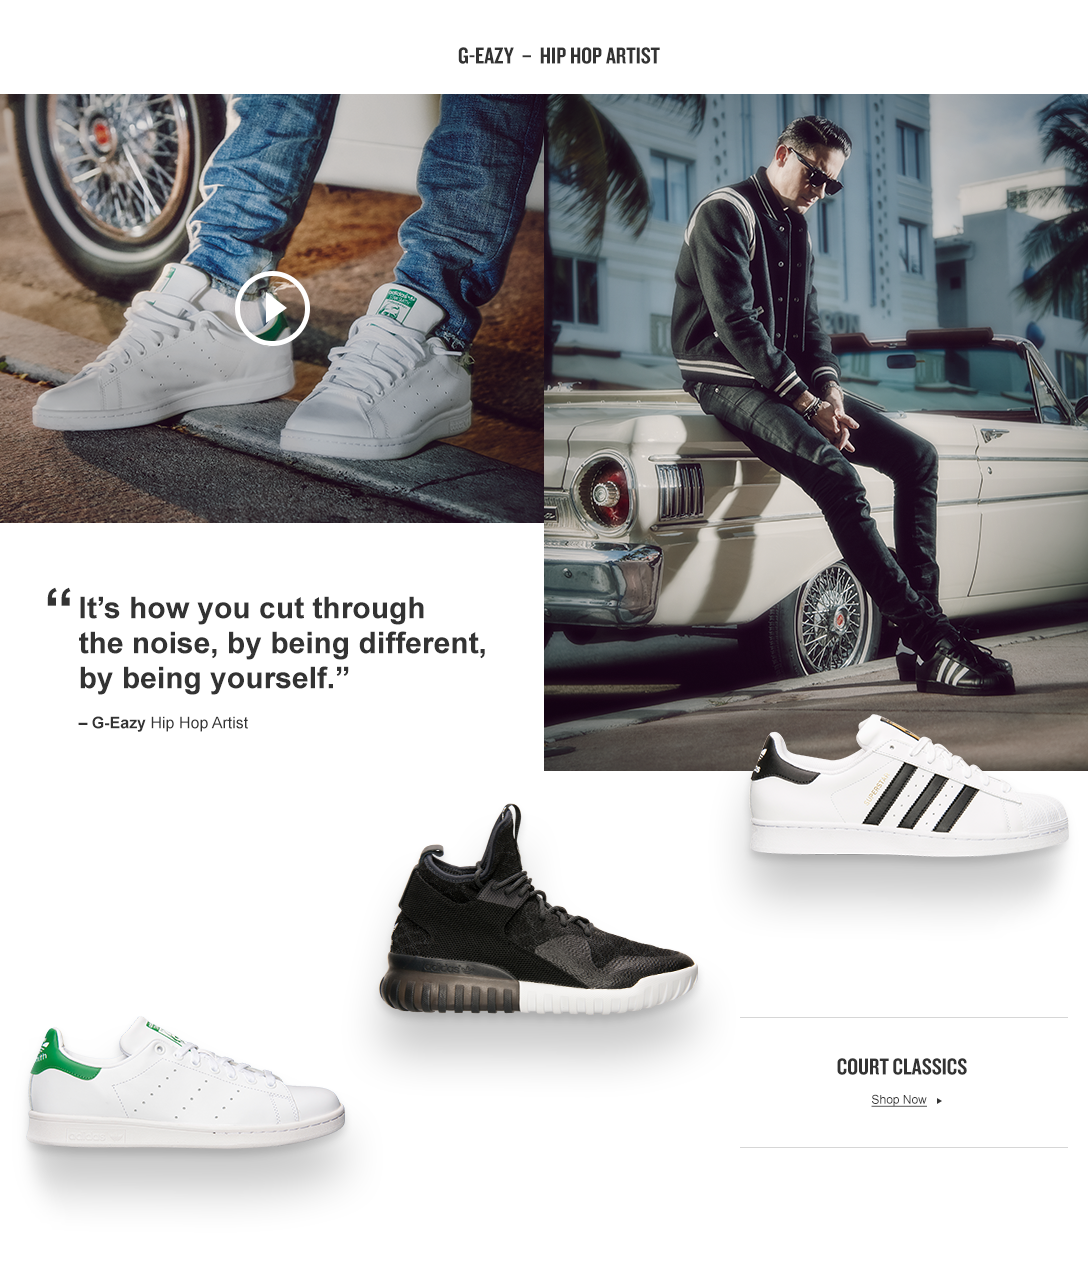 Hip Hop Artist G-Eazy said 'It's how you cut through the noise, by being different, by being yourself.' while rocking adidas Court Classics